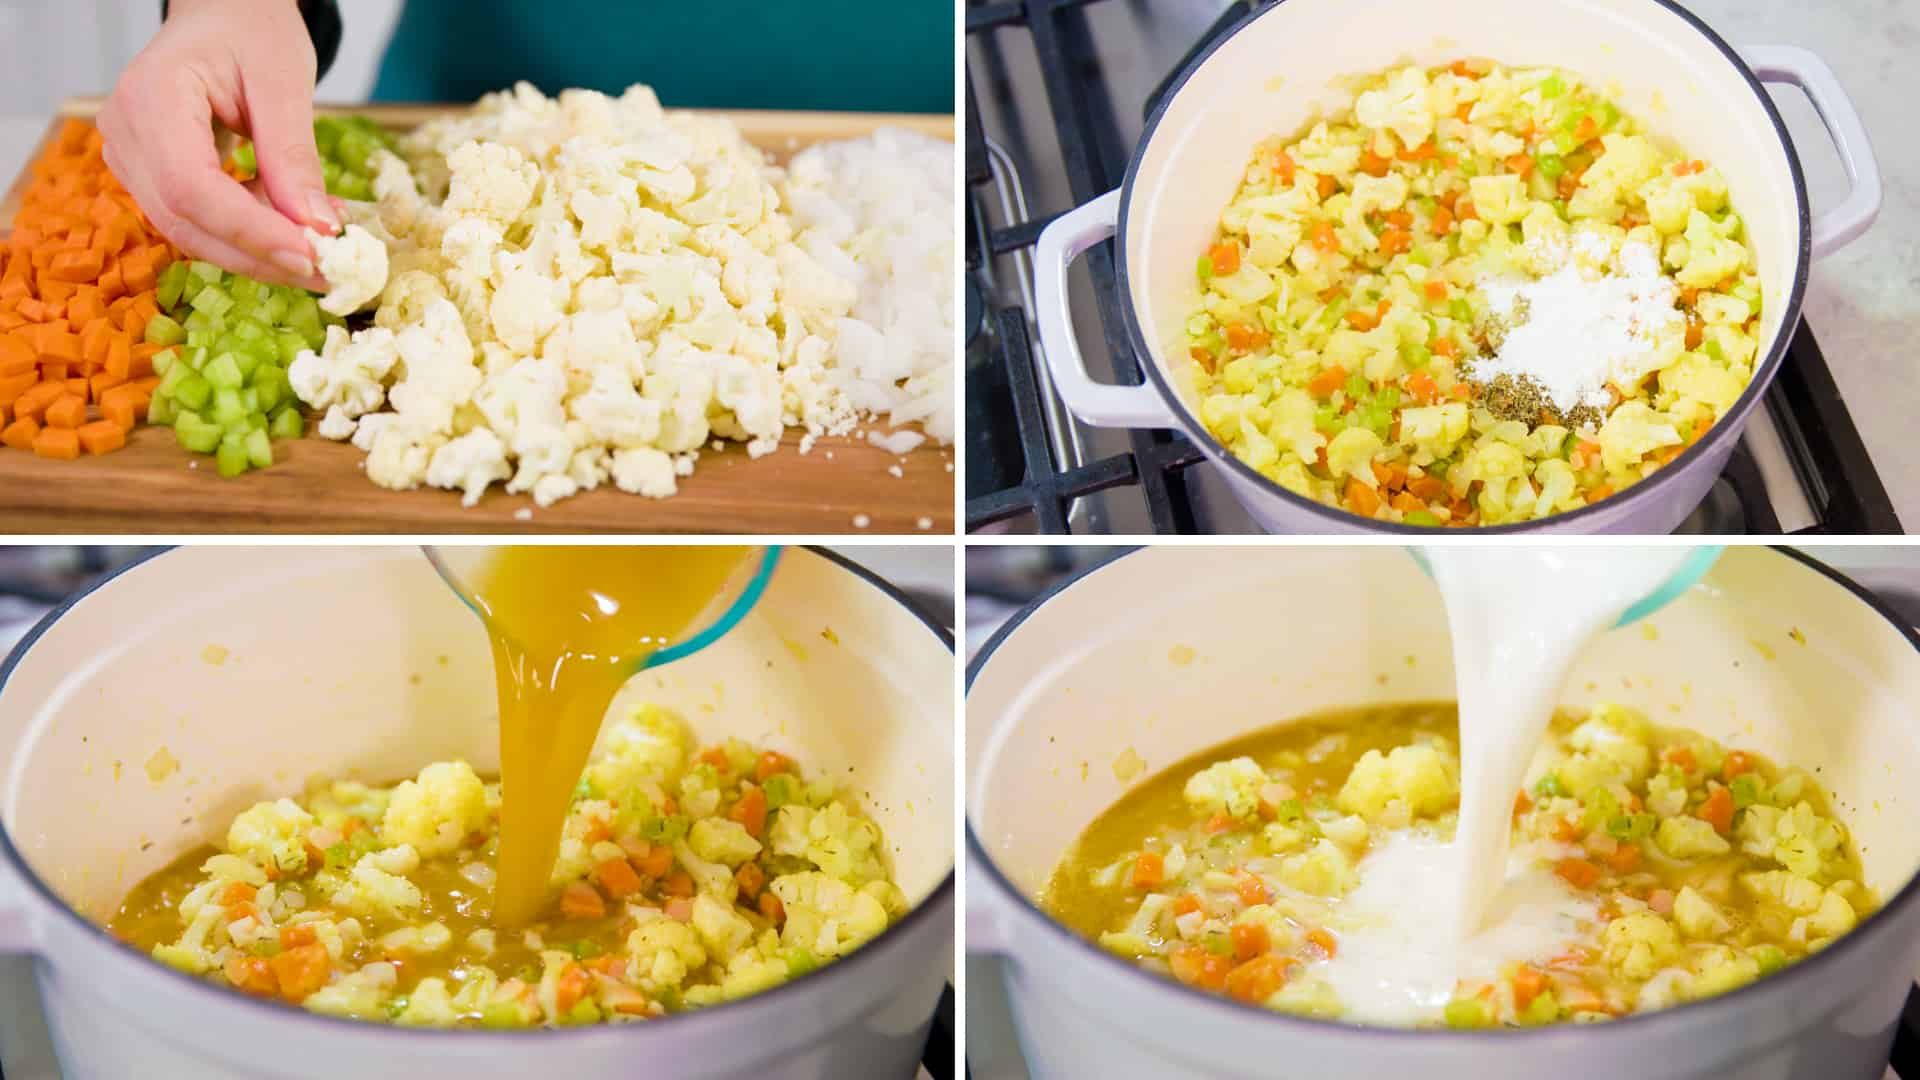 Process photos for How to Make Cauliflower Soup